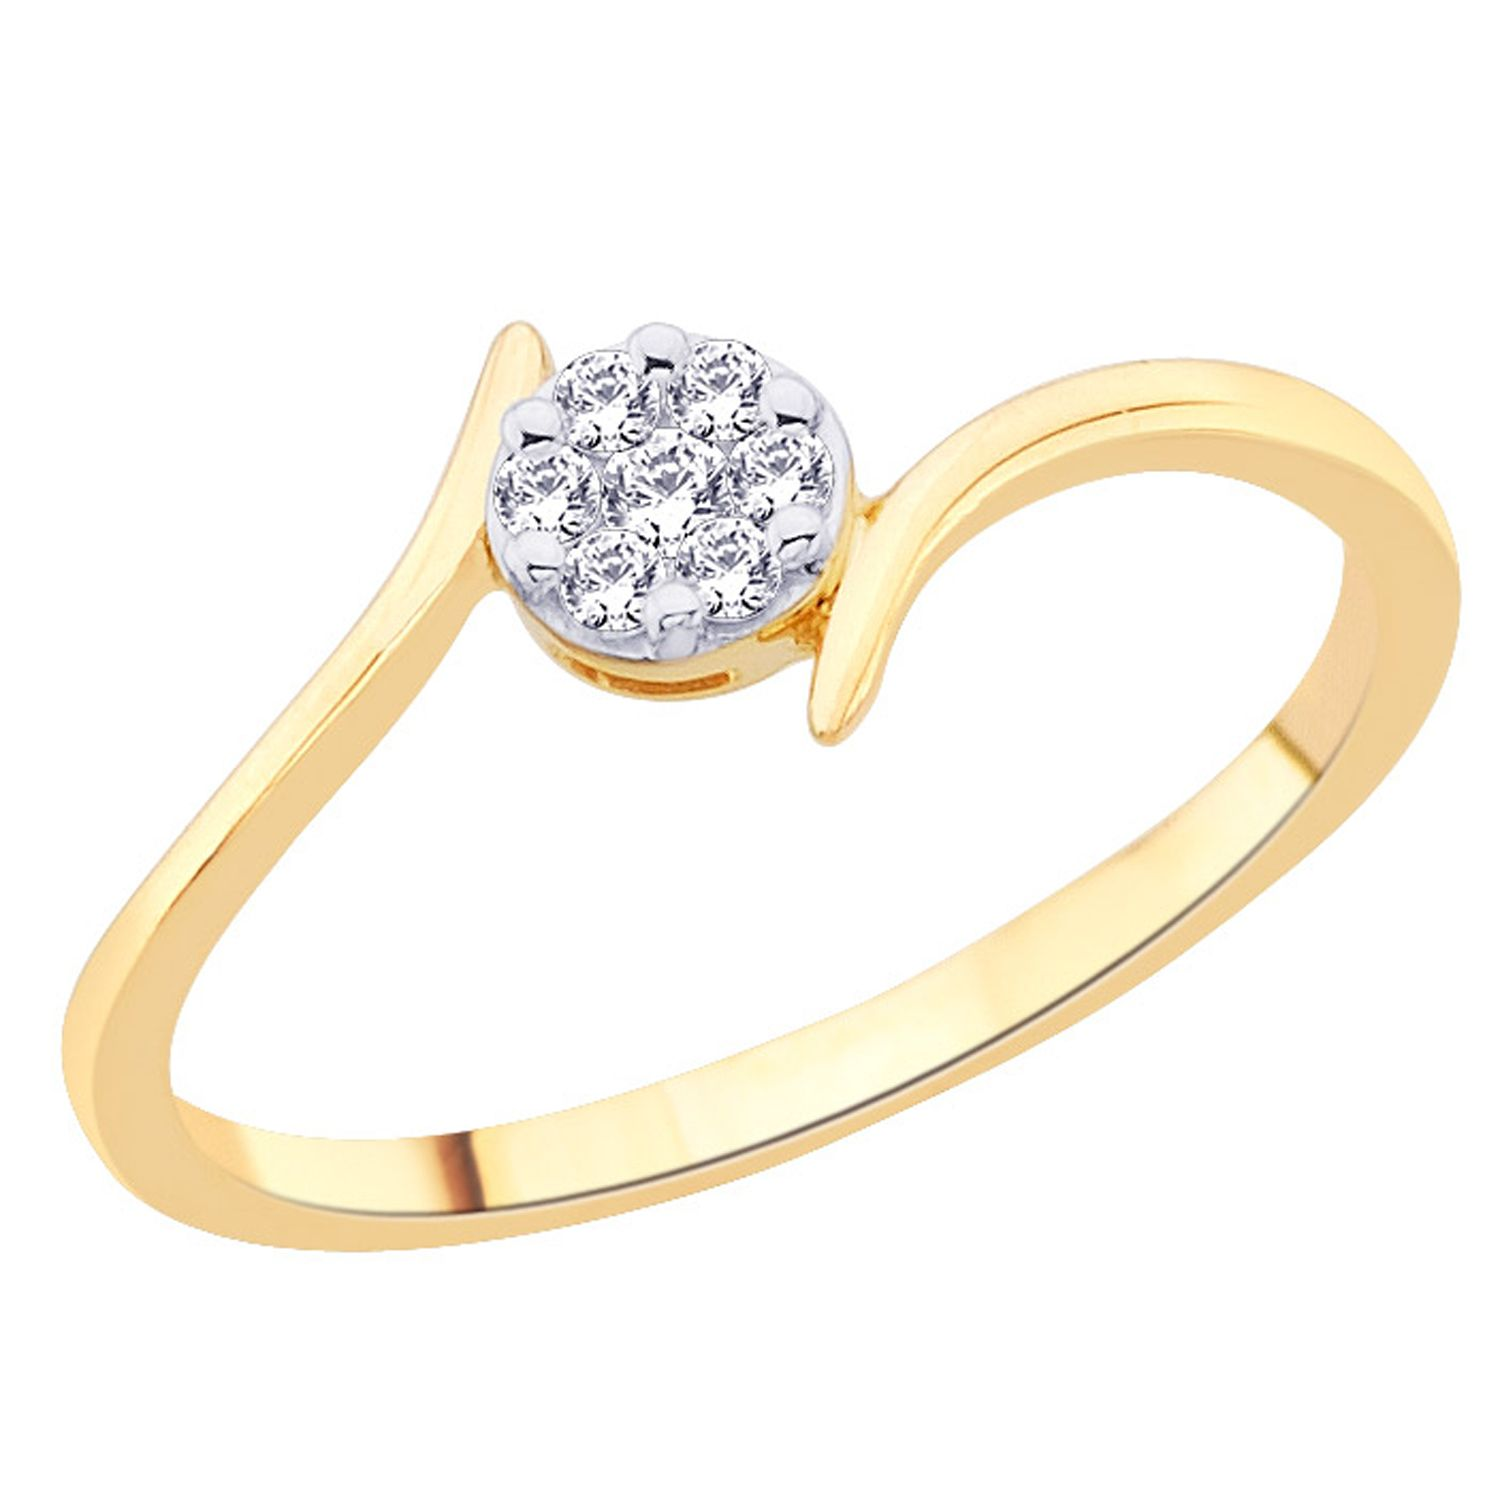 Highest Quality Best Price NZ Diamond Rings and Engagement Rings